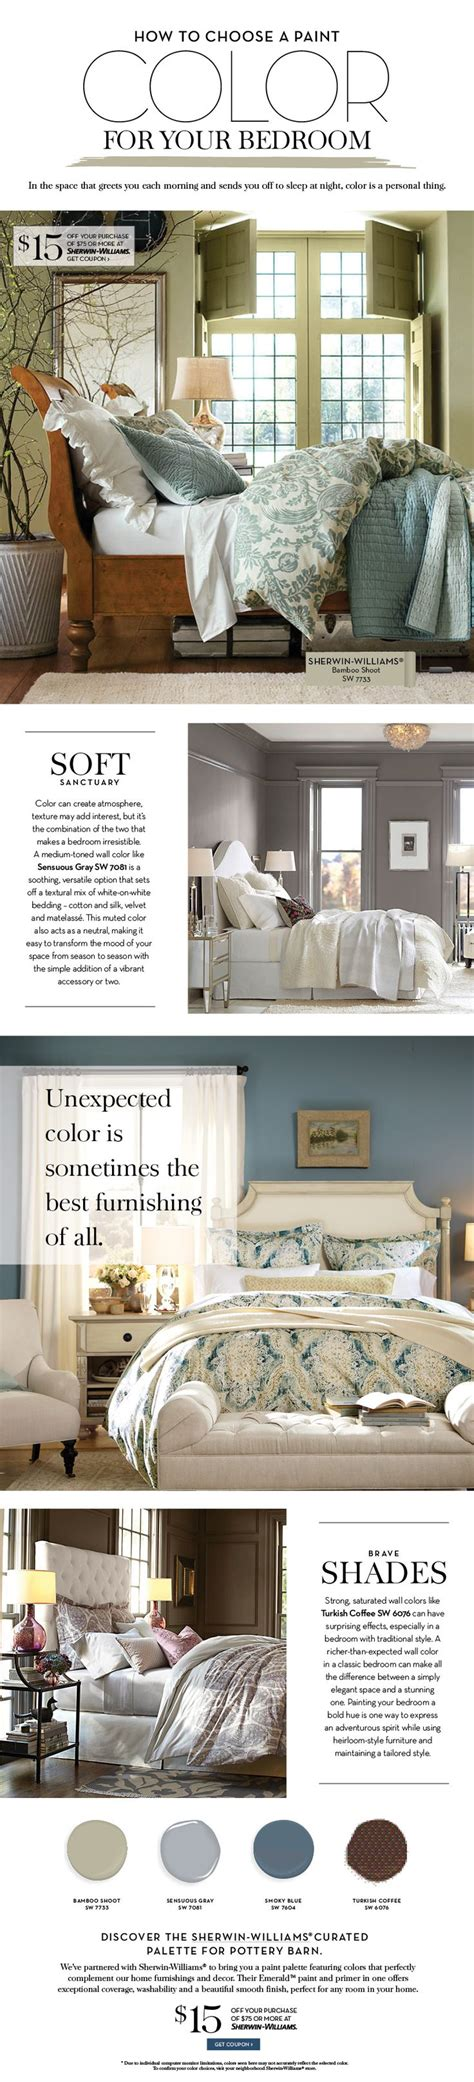 pottery barn bedroom colors best 20 barn bedrooms ideas on pinterest